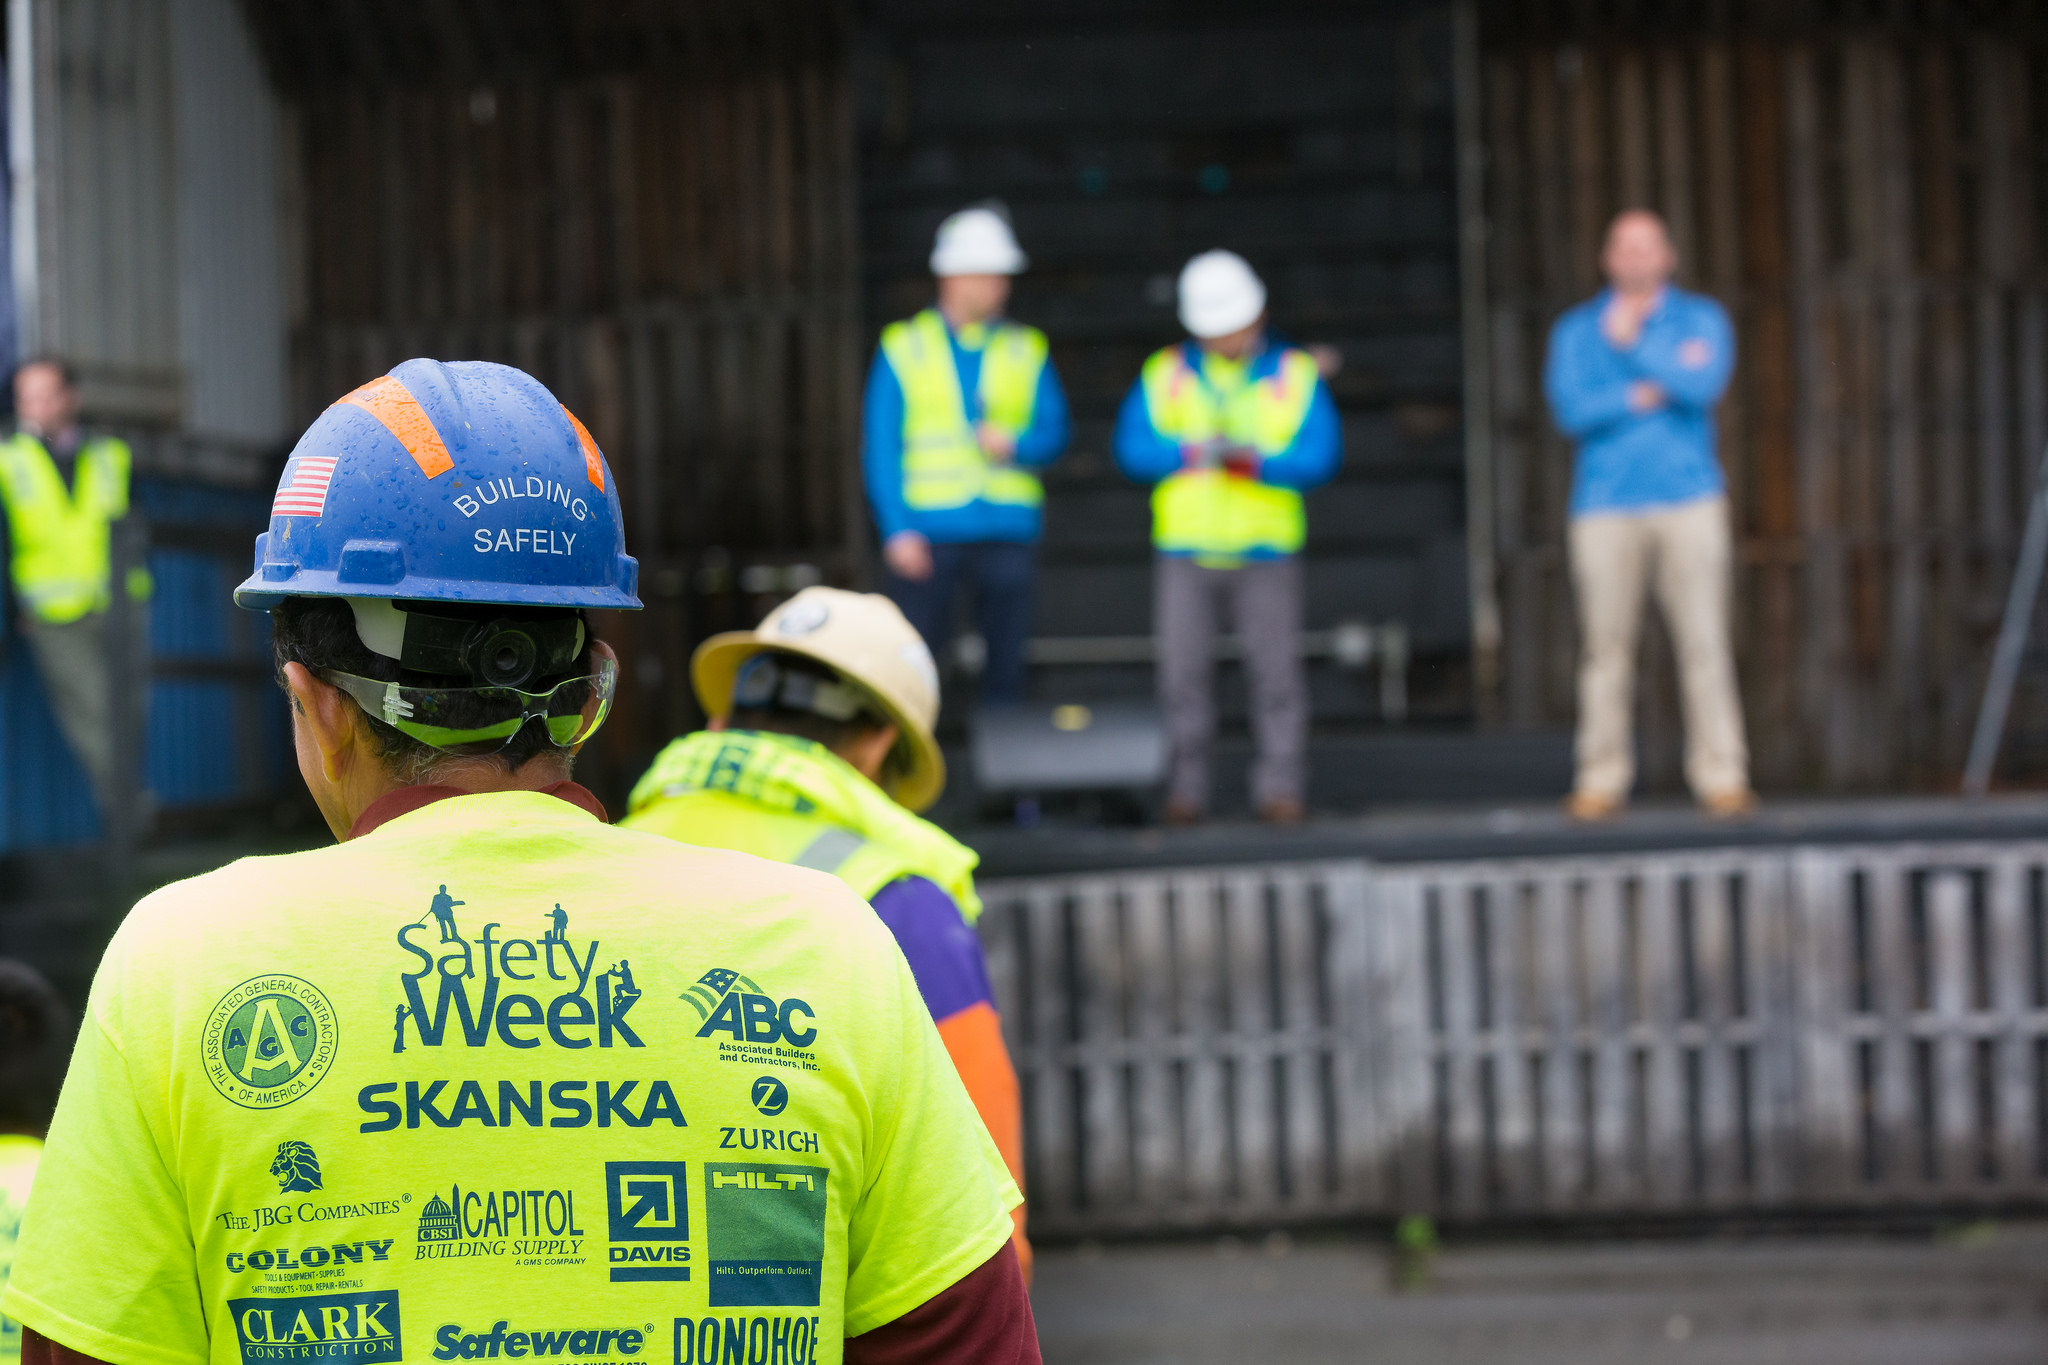 In the foreground, there's a worker wearing a hard hat and a yellow shirt that reads Safety Week. In the background, there are workers wearing hard hats and safety vests standing in an unfinished building.